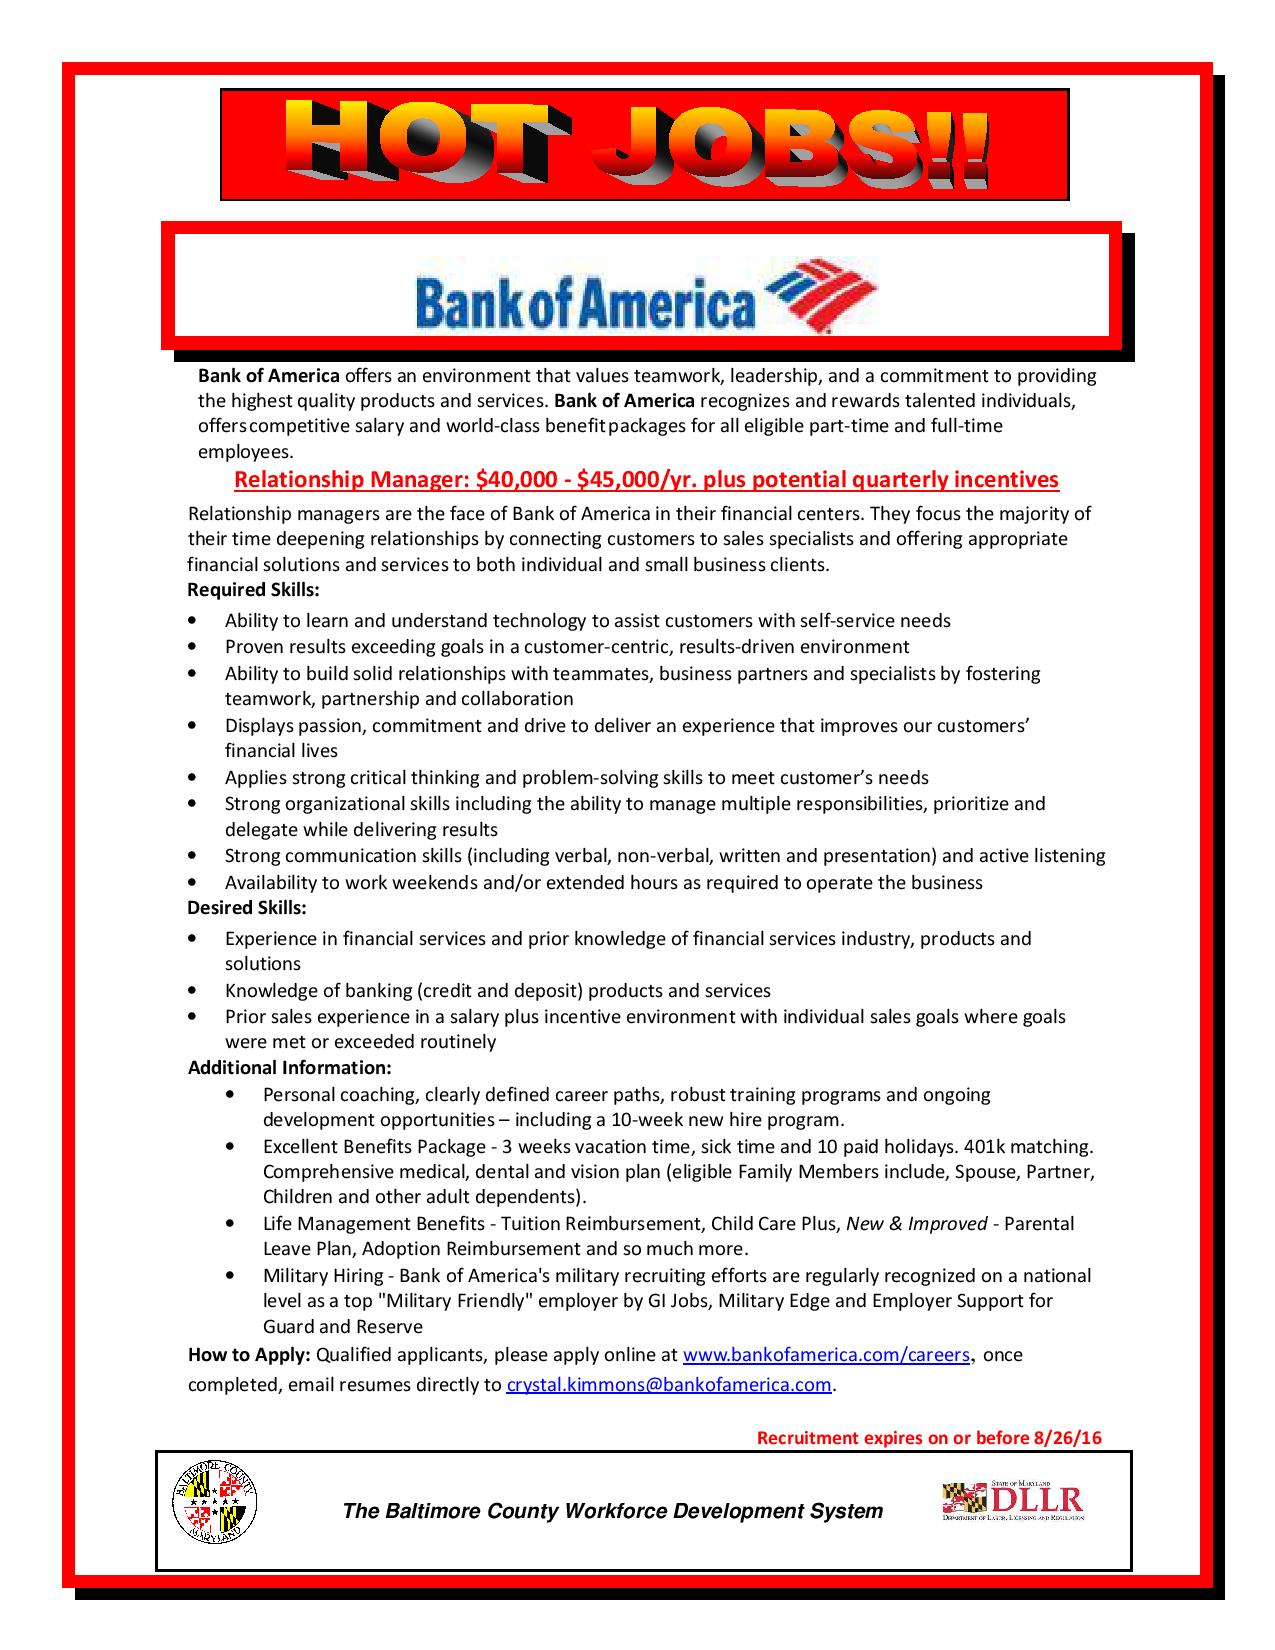 "Mayor's OED on Twitter: ""Now #Hiring! Bank of America is seeking a  Relationship Manager - $40,000-$45,000 per year. #BaltimoreJobs… """